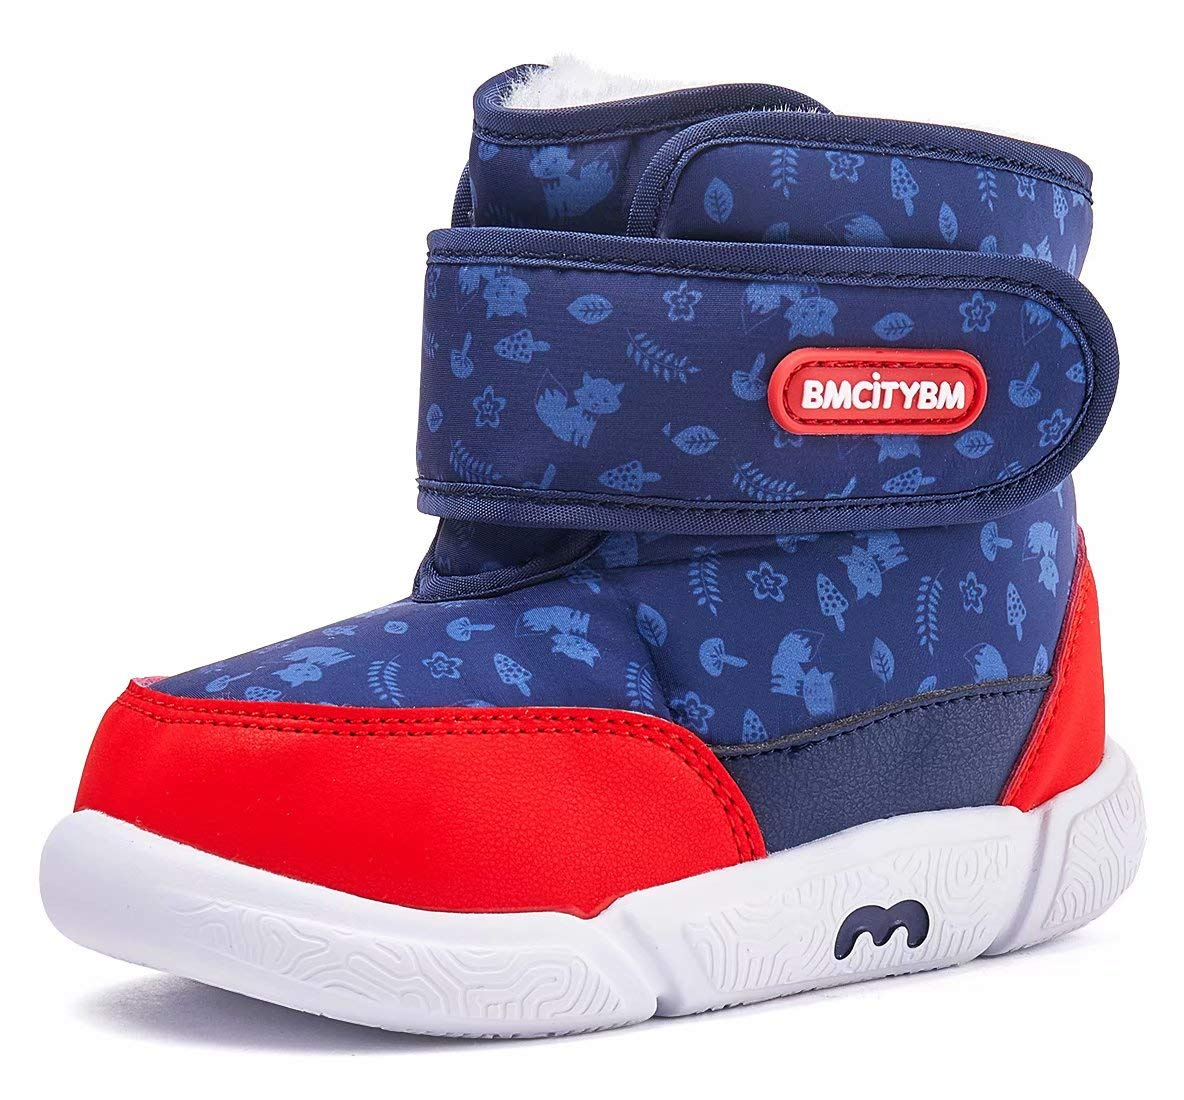 BMCiTYBM Toddler Snow Boot for Baby Girl Baby Boy Winter Waterproof Outdoor Infant ShoesM18FW008-blue-165